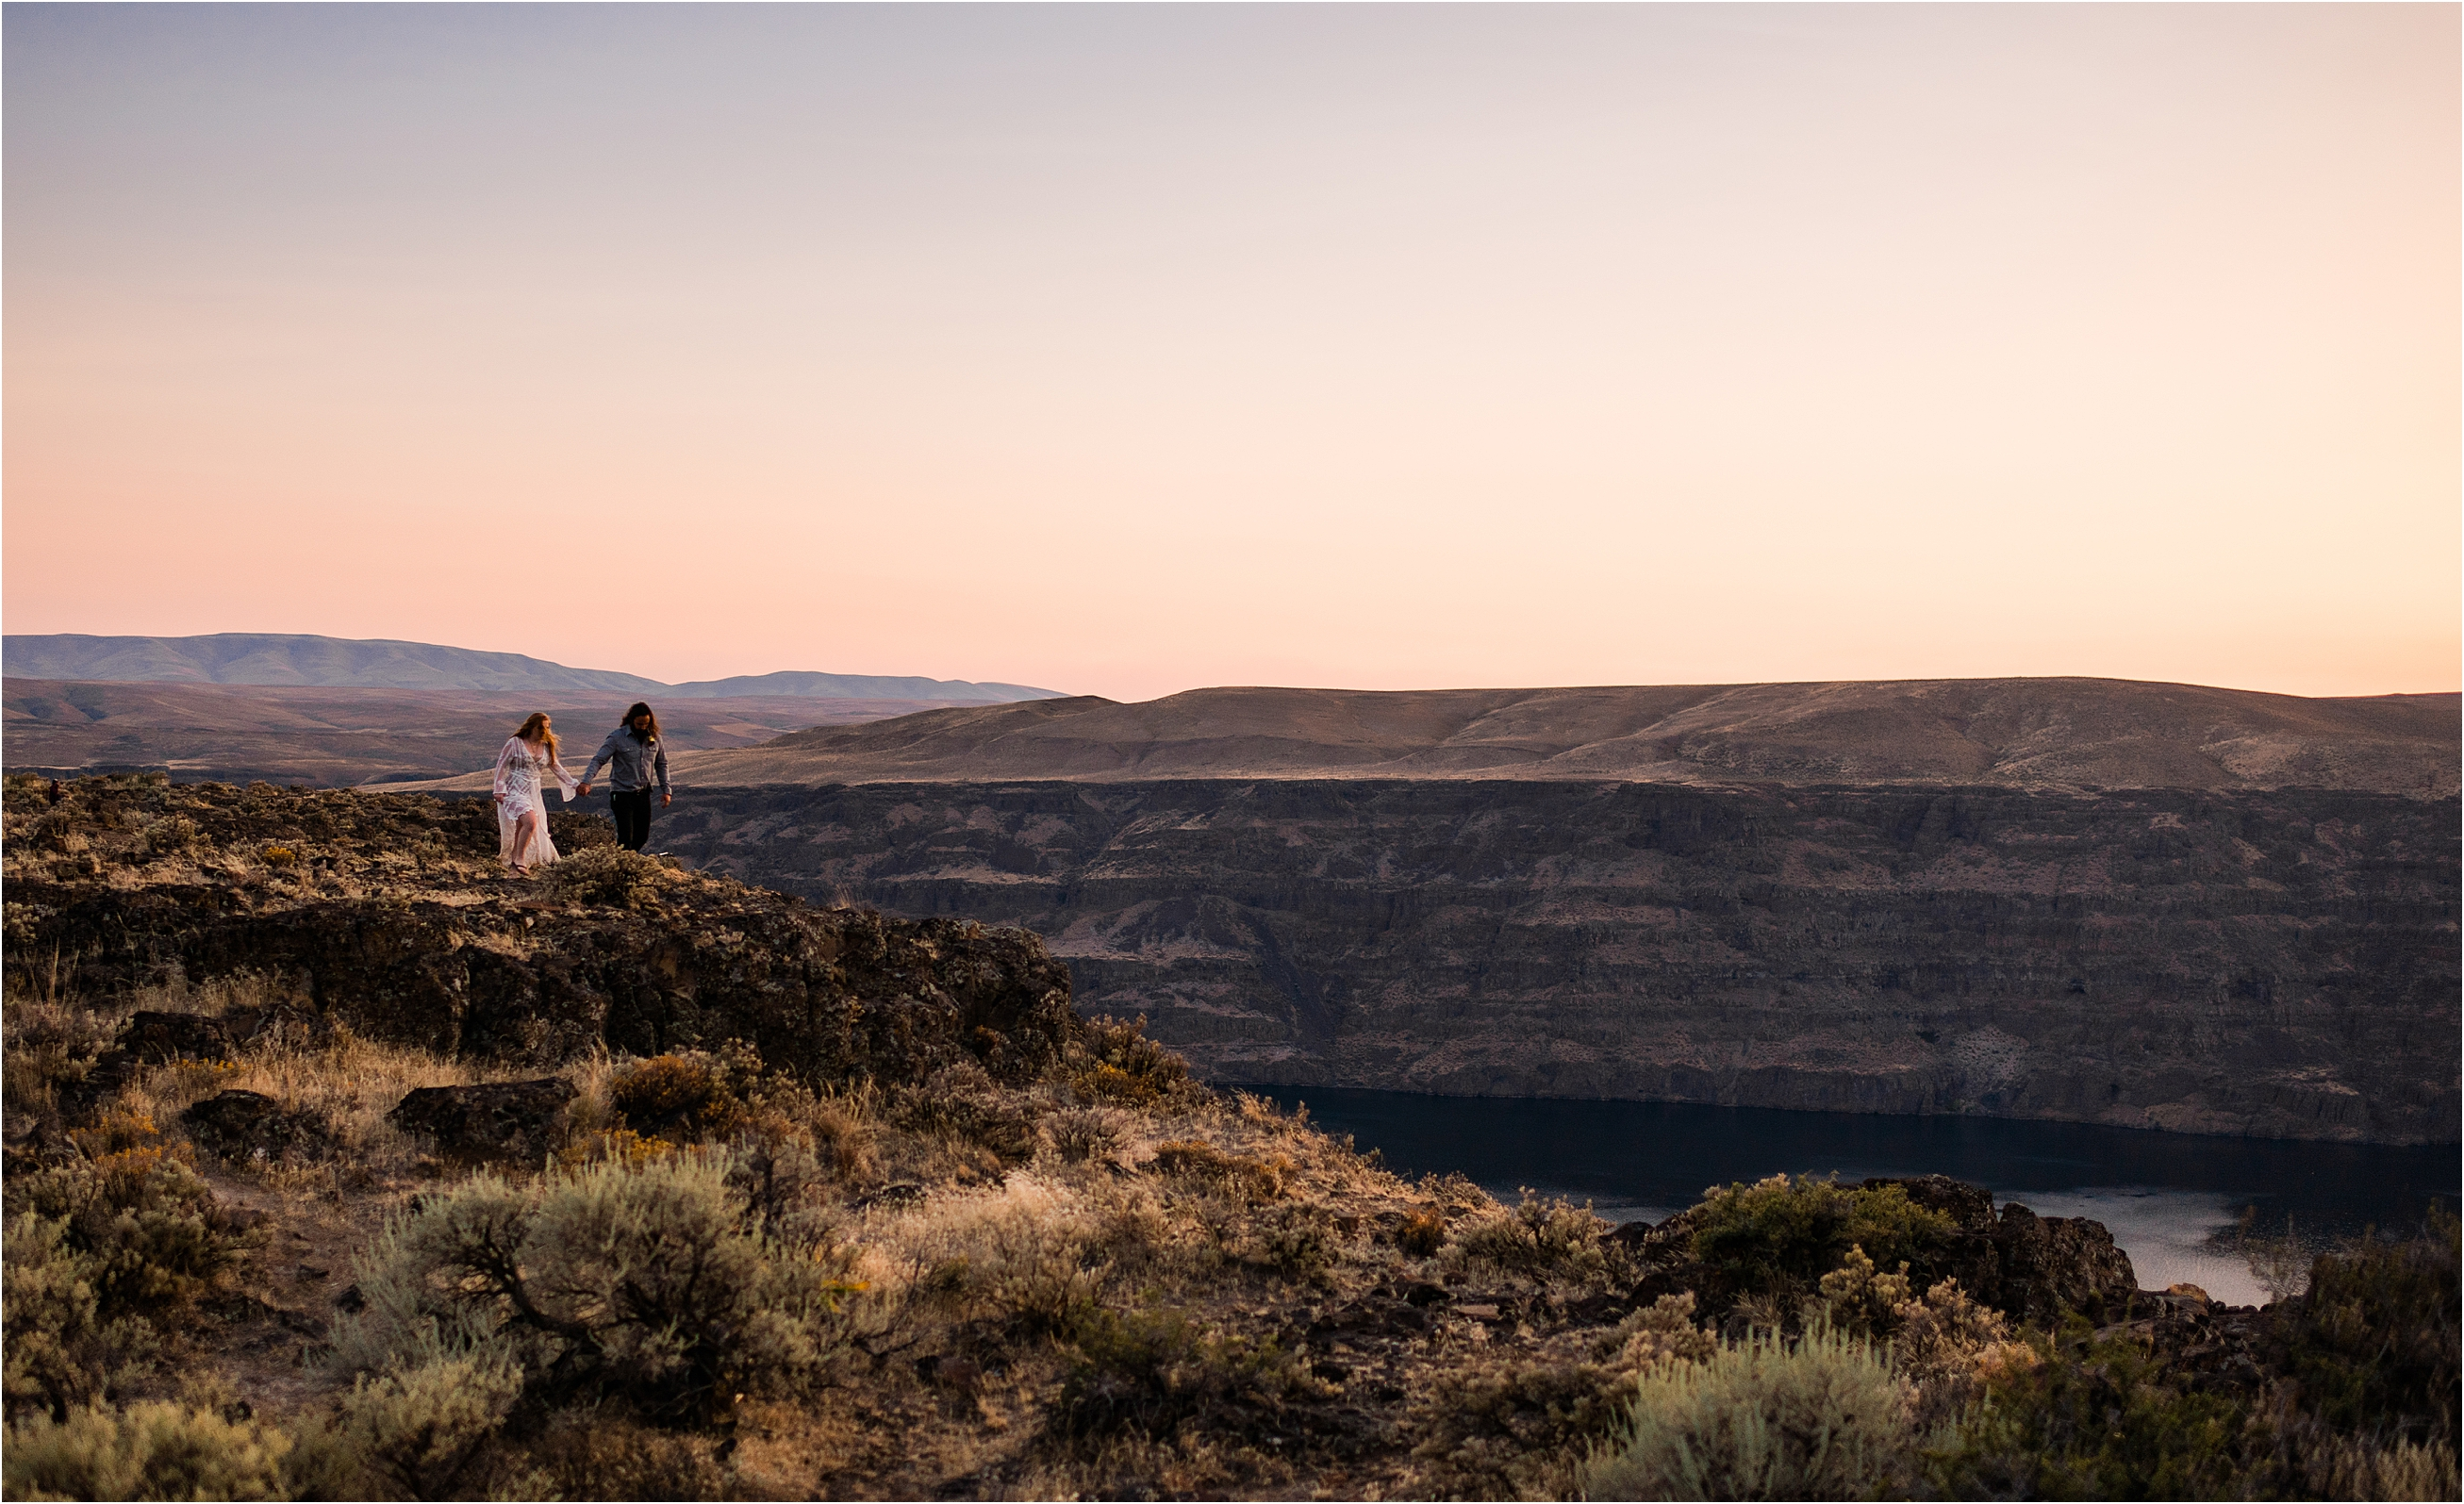 Caitlin & Tarnell on the Columbia River Gorge at sunset. Wild Horse Monument Elopement Inspiration by Forthright Photo.